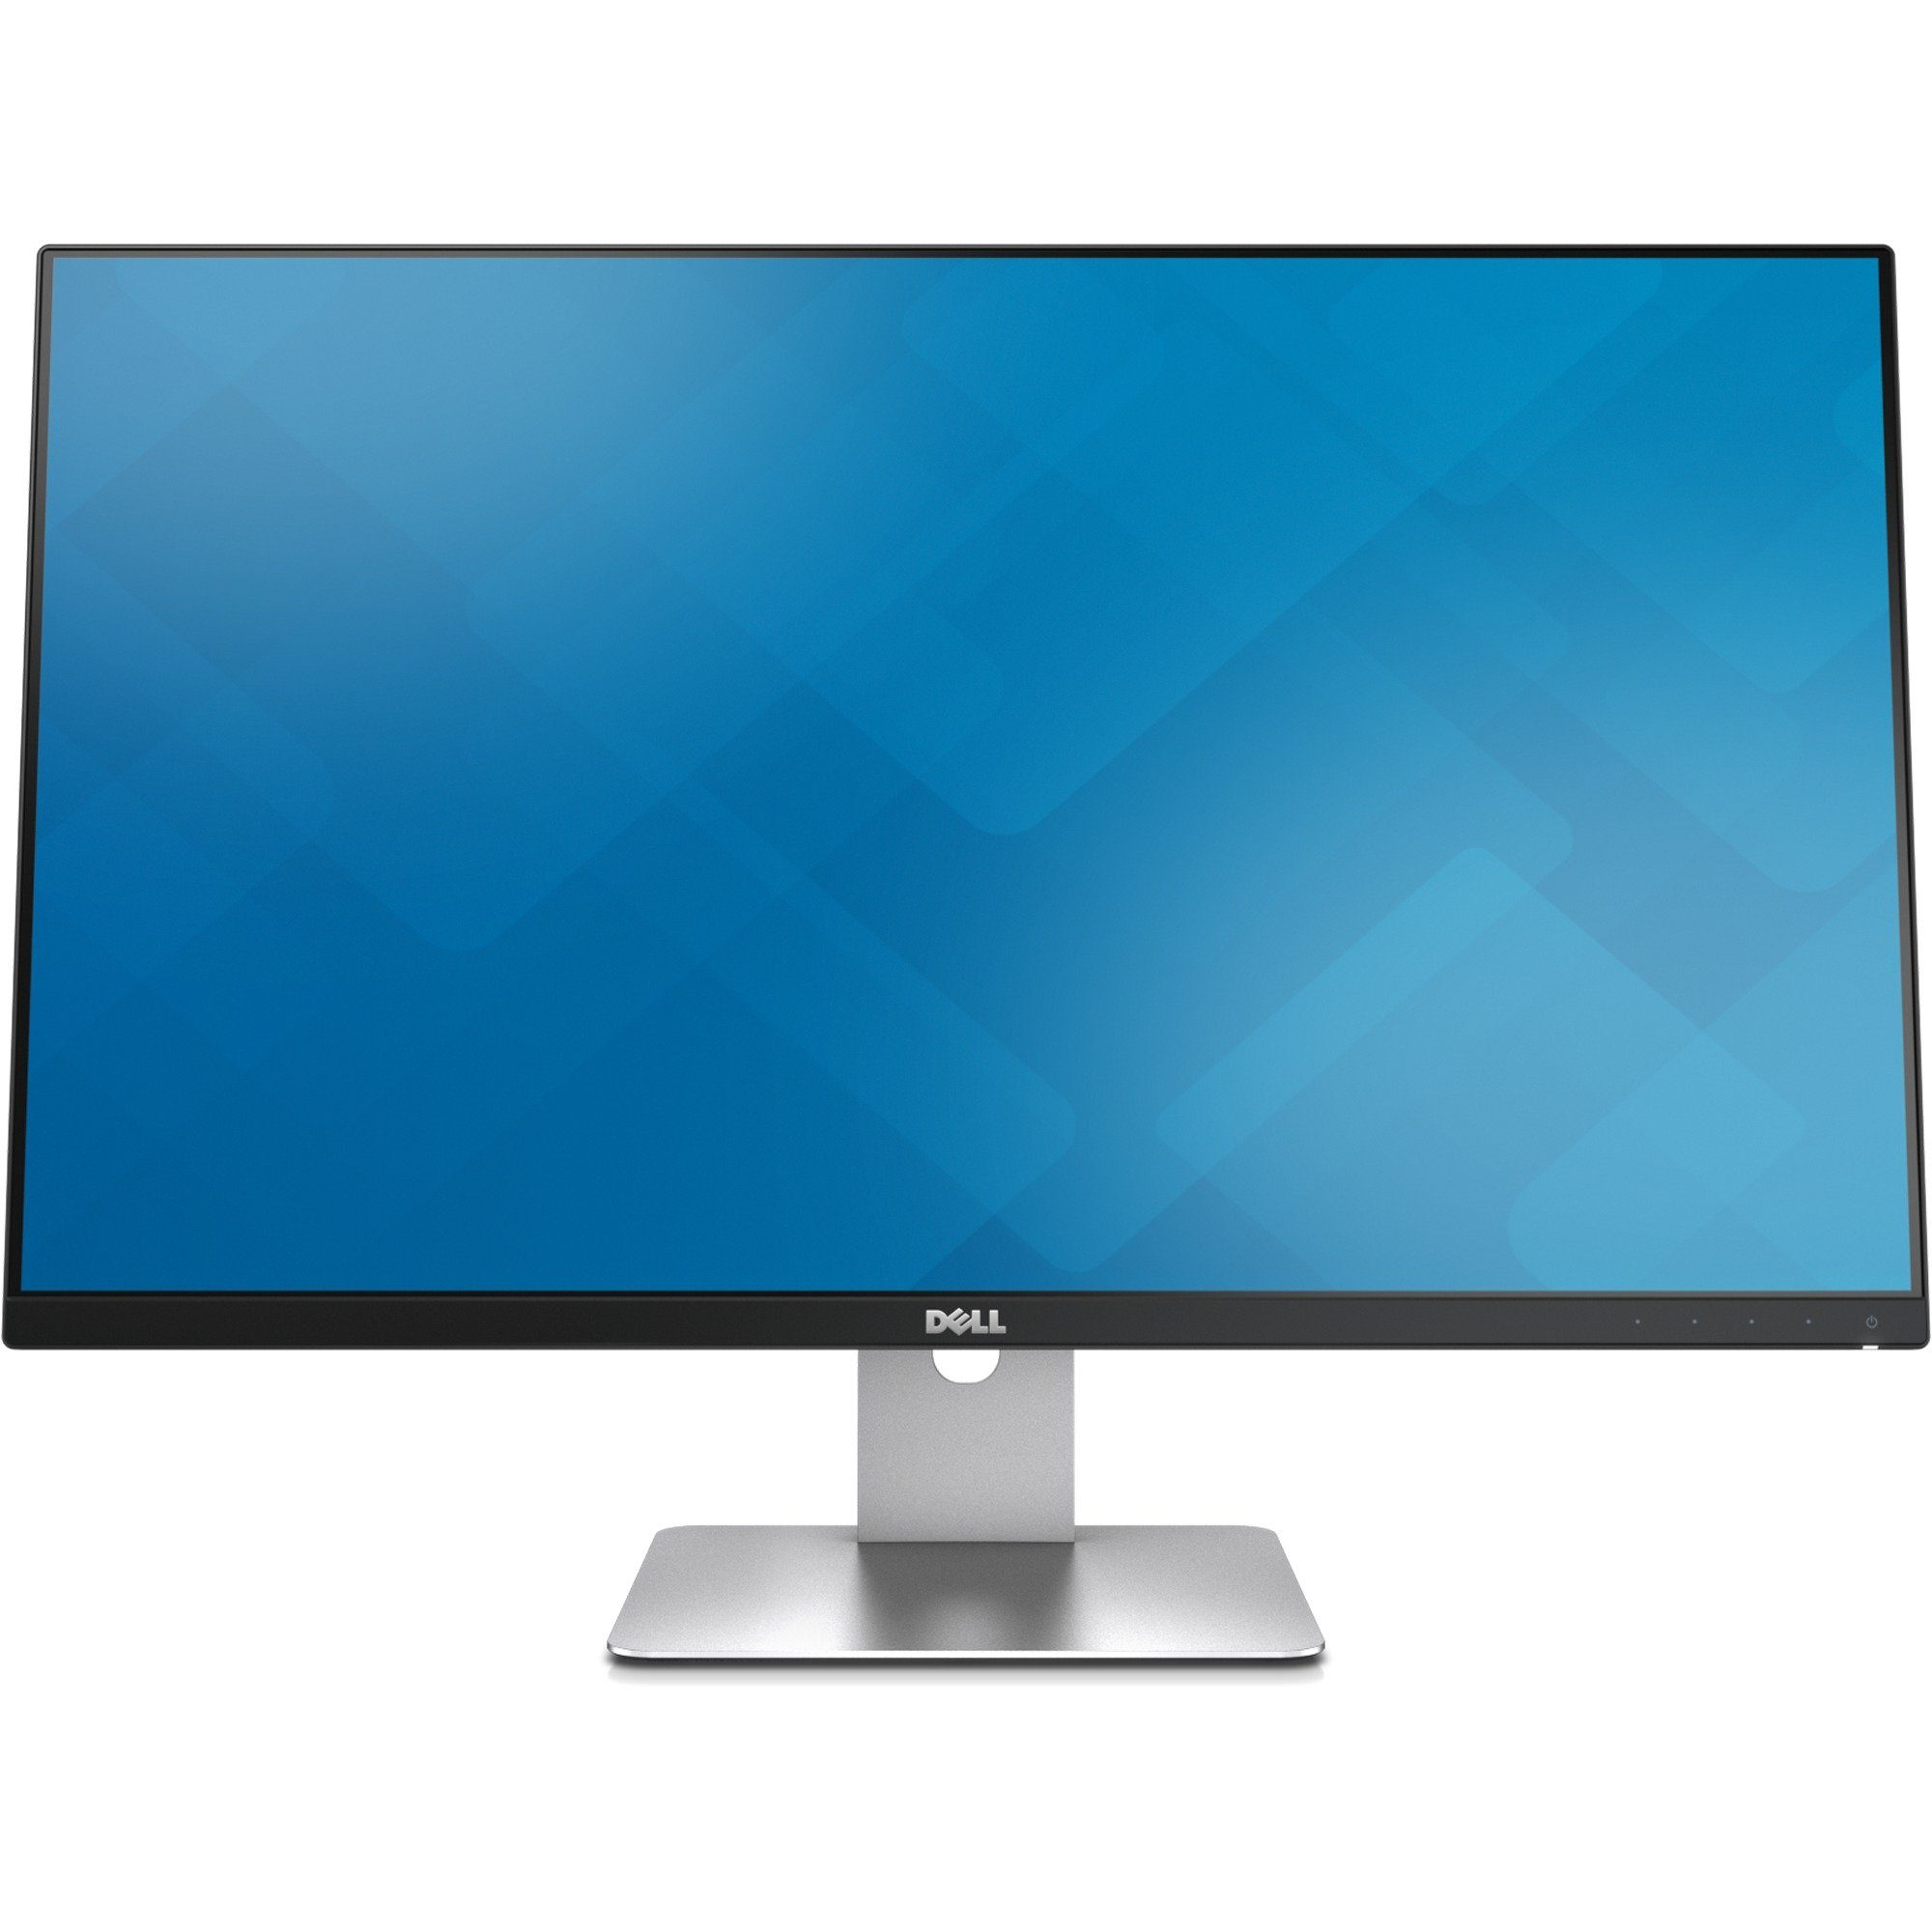 Dell LED-Monitor »S2715H«